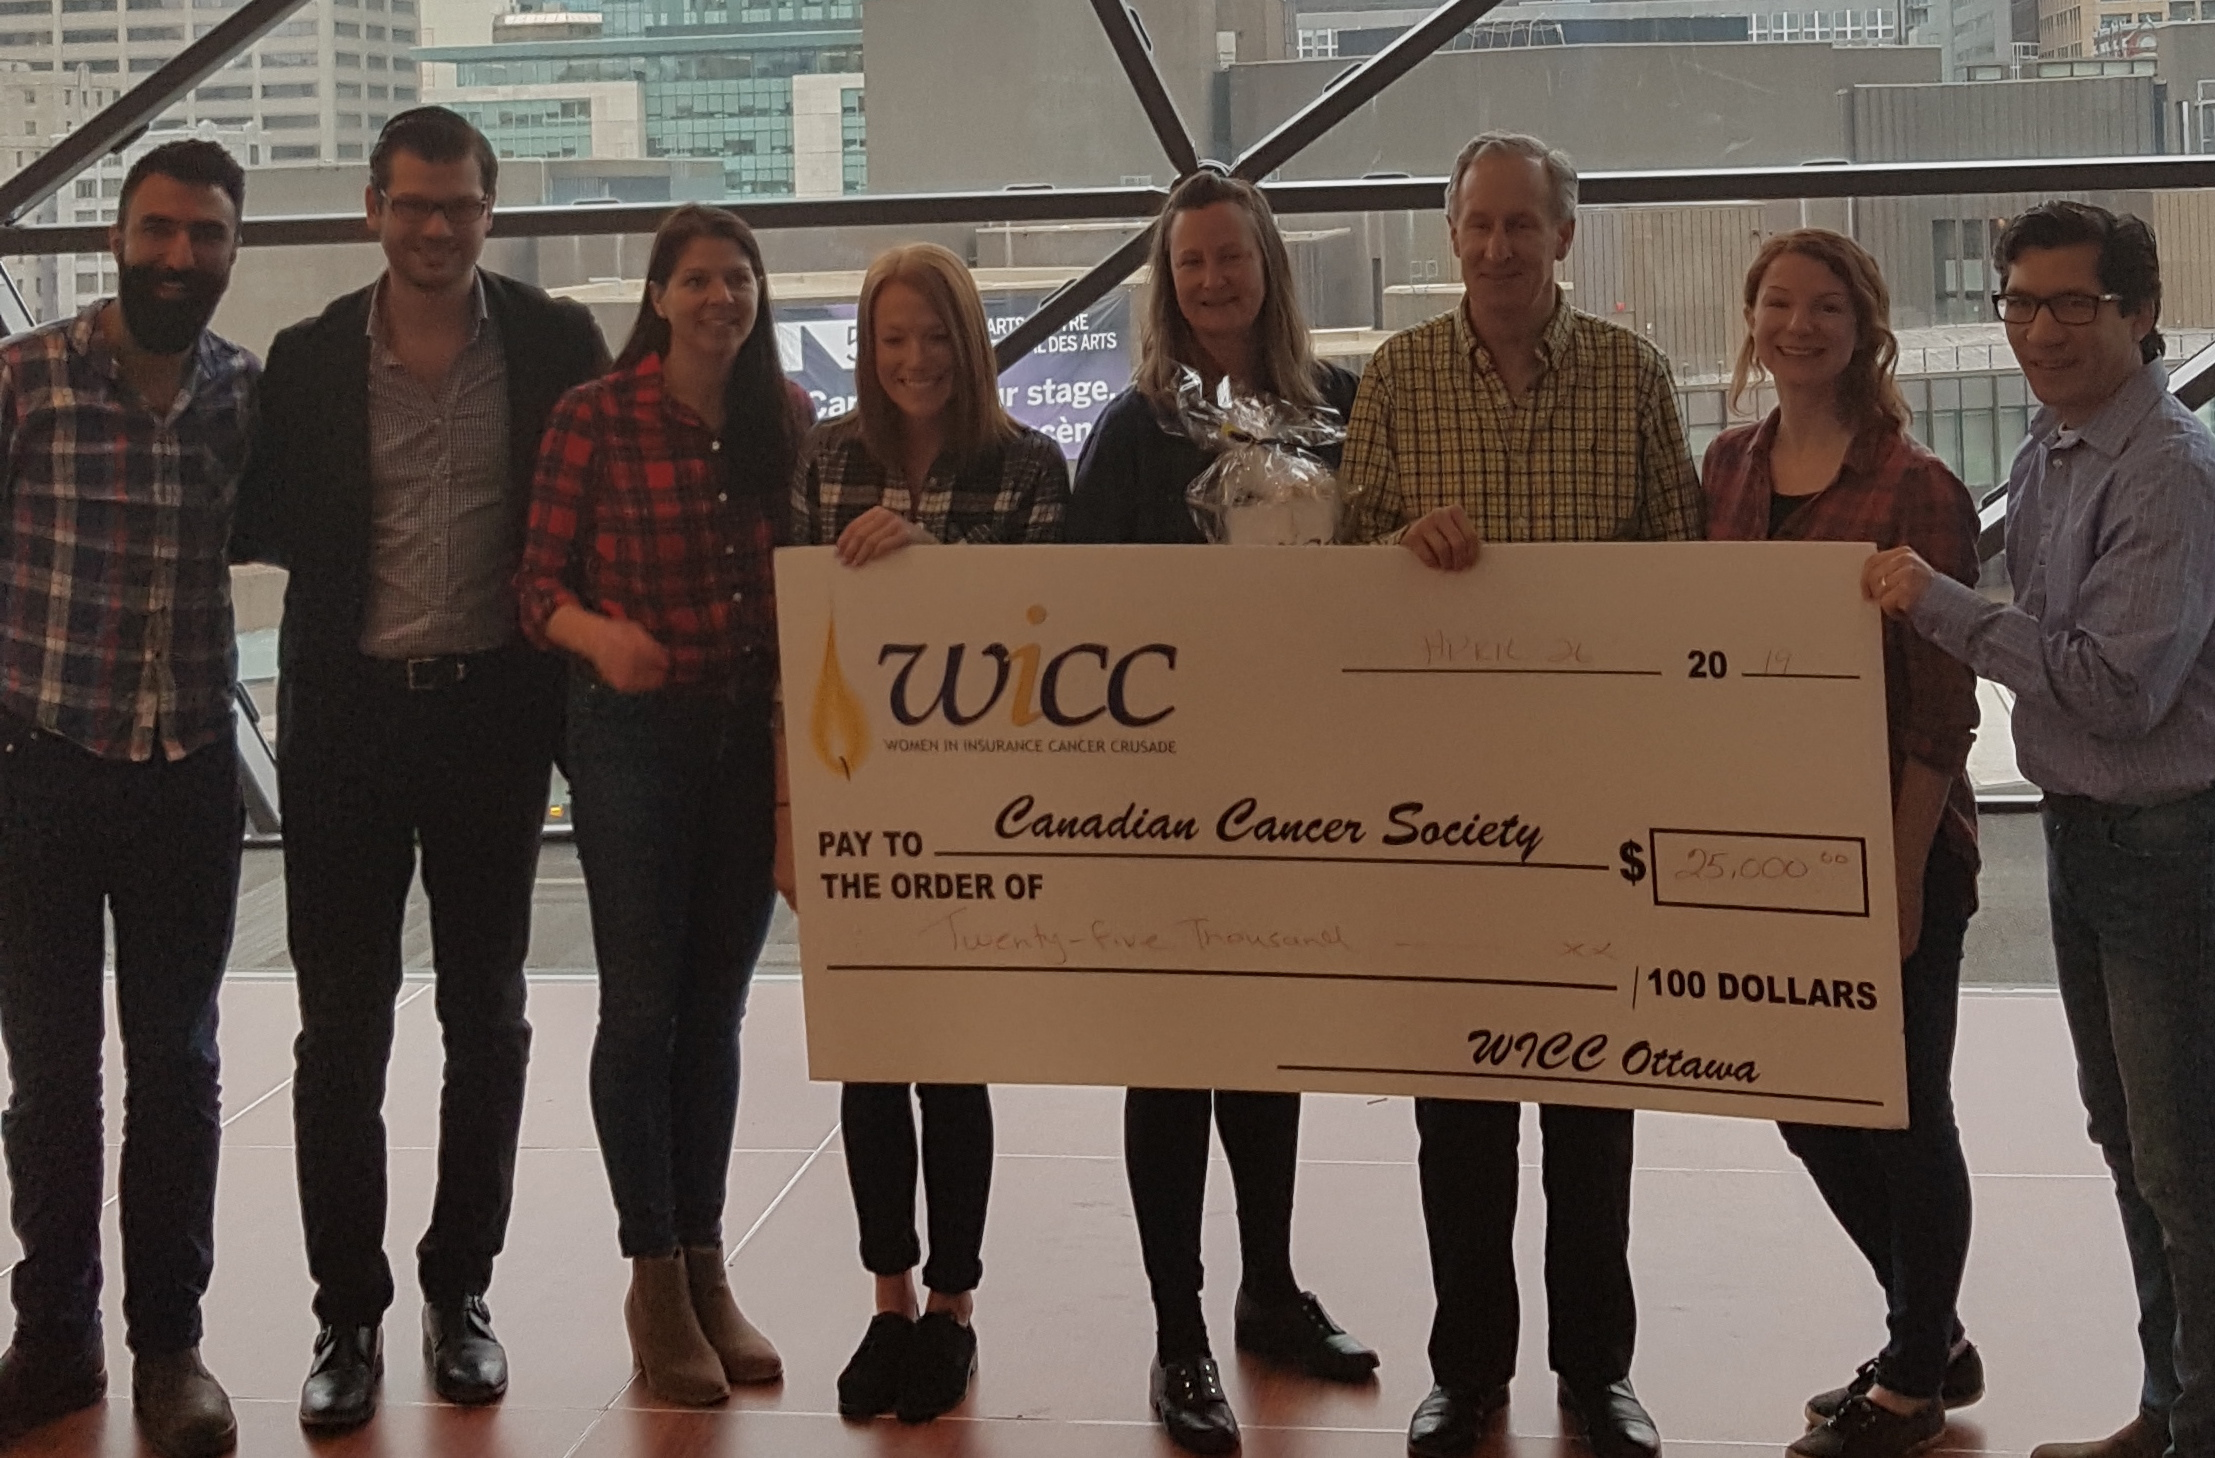 Group holding check at Wicc breakfast 2019